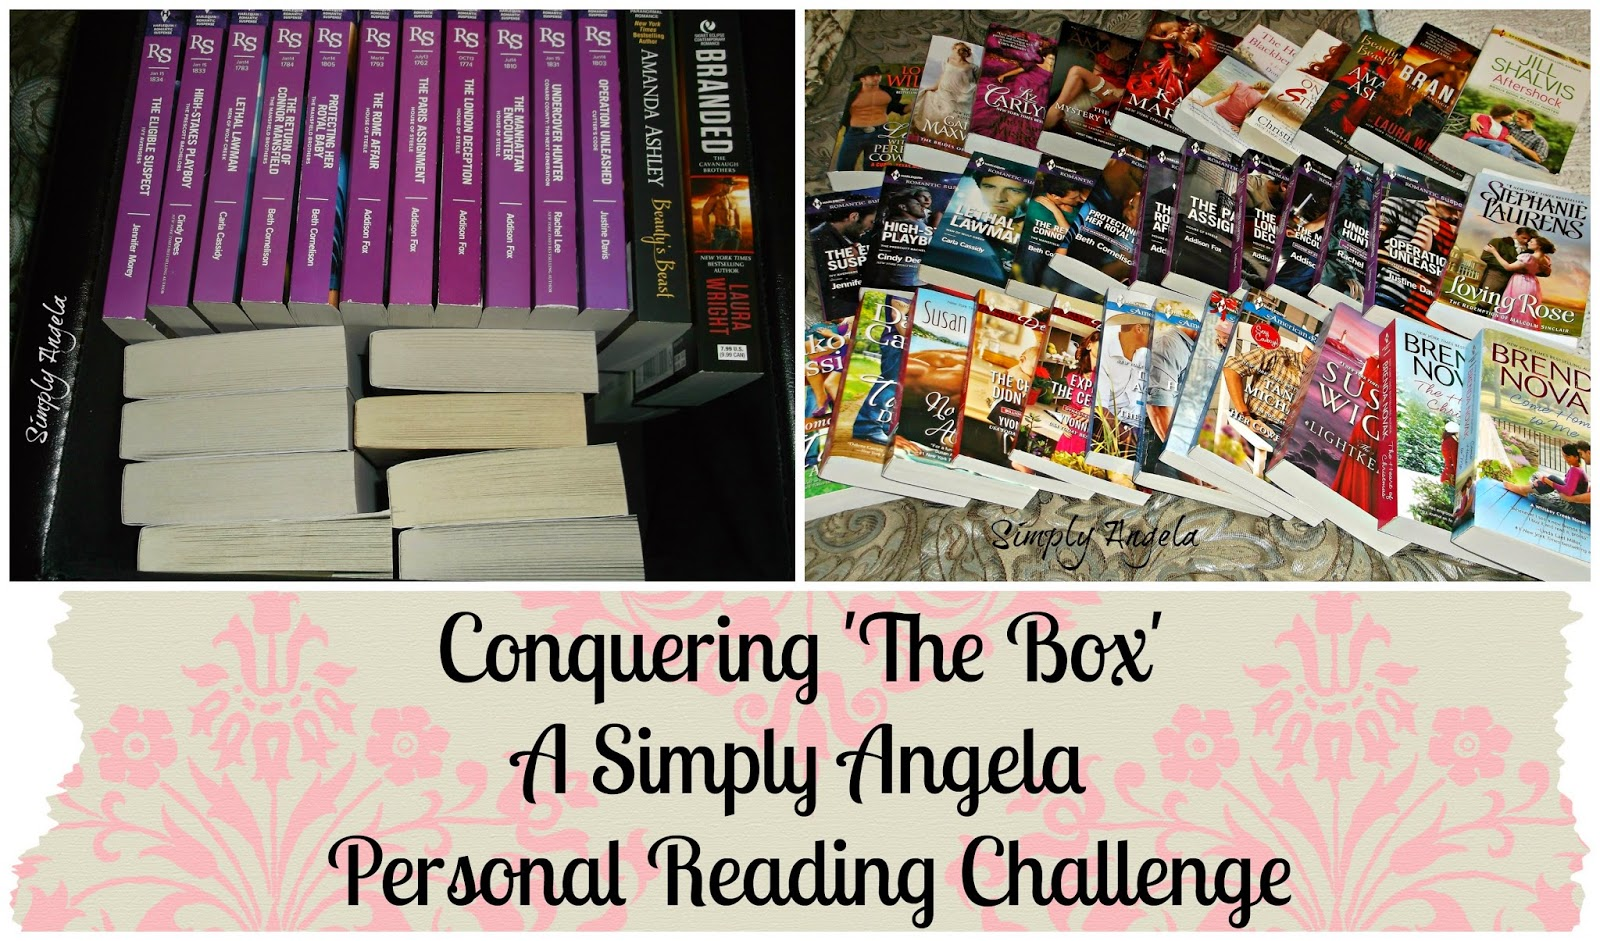 http://simplyangelarenee.blogspot.com/2015/01/personal-reading-challenge-conquering.html